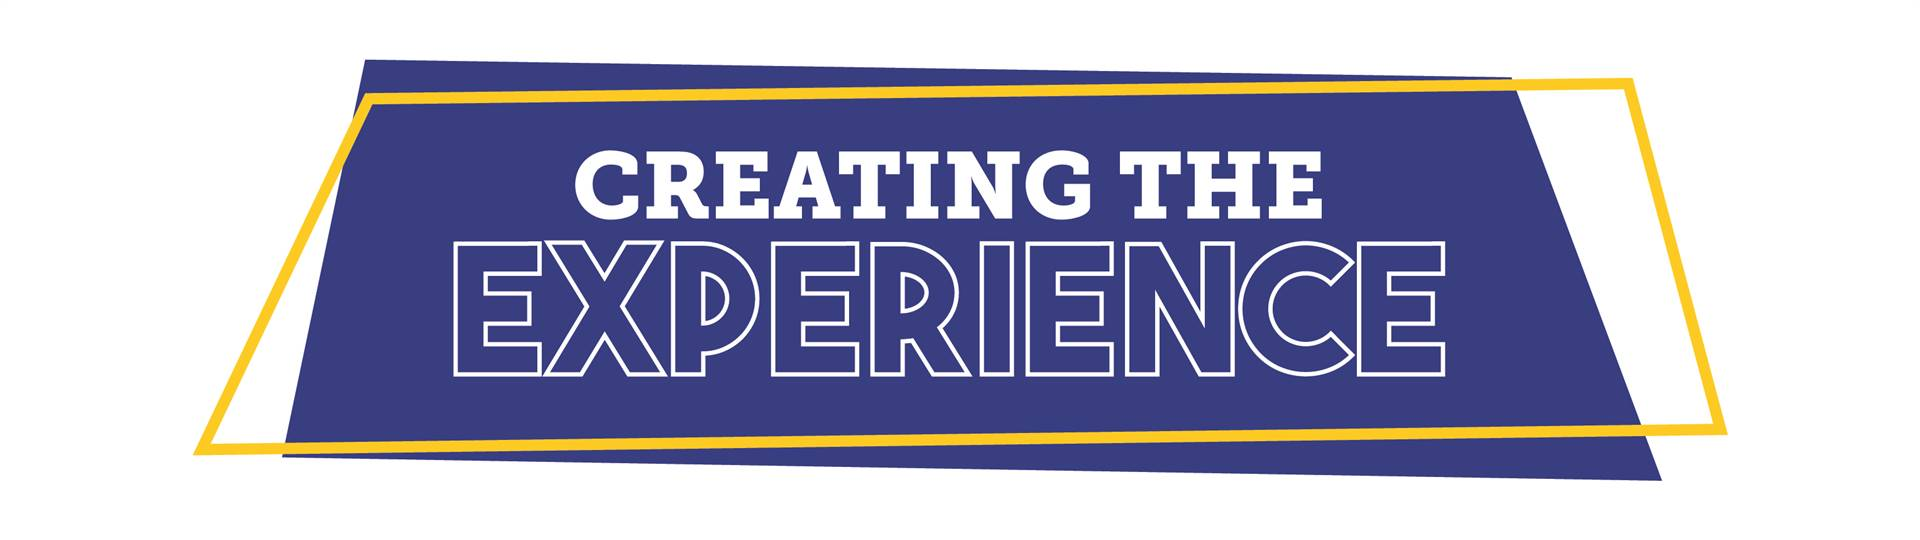 Creating the Experience